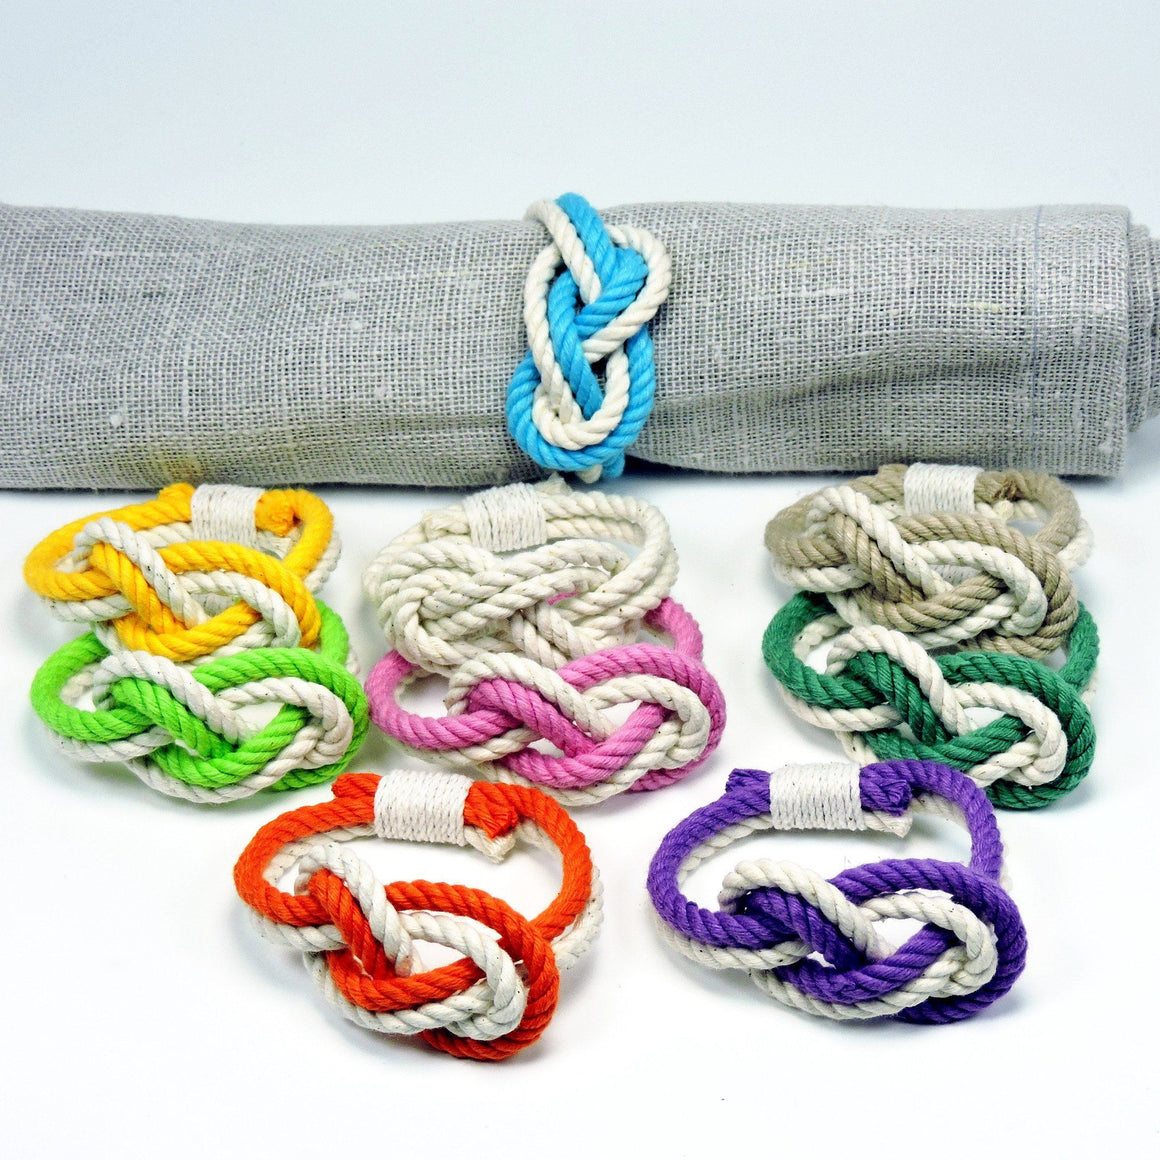 Figure Eight Infinity Knot Napkin Rings, Tropical Colors, Set of 4 - Mystic Knotwork nautical knot